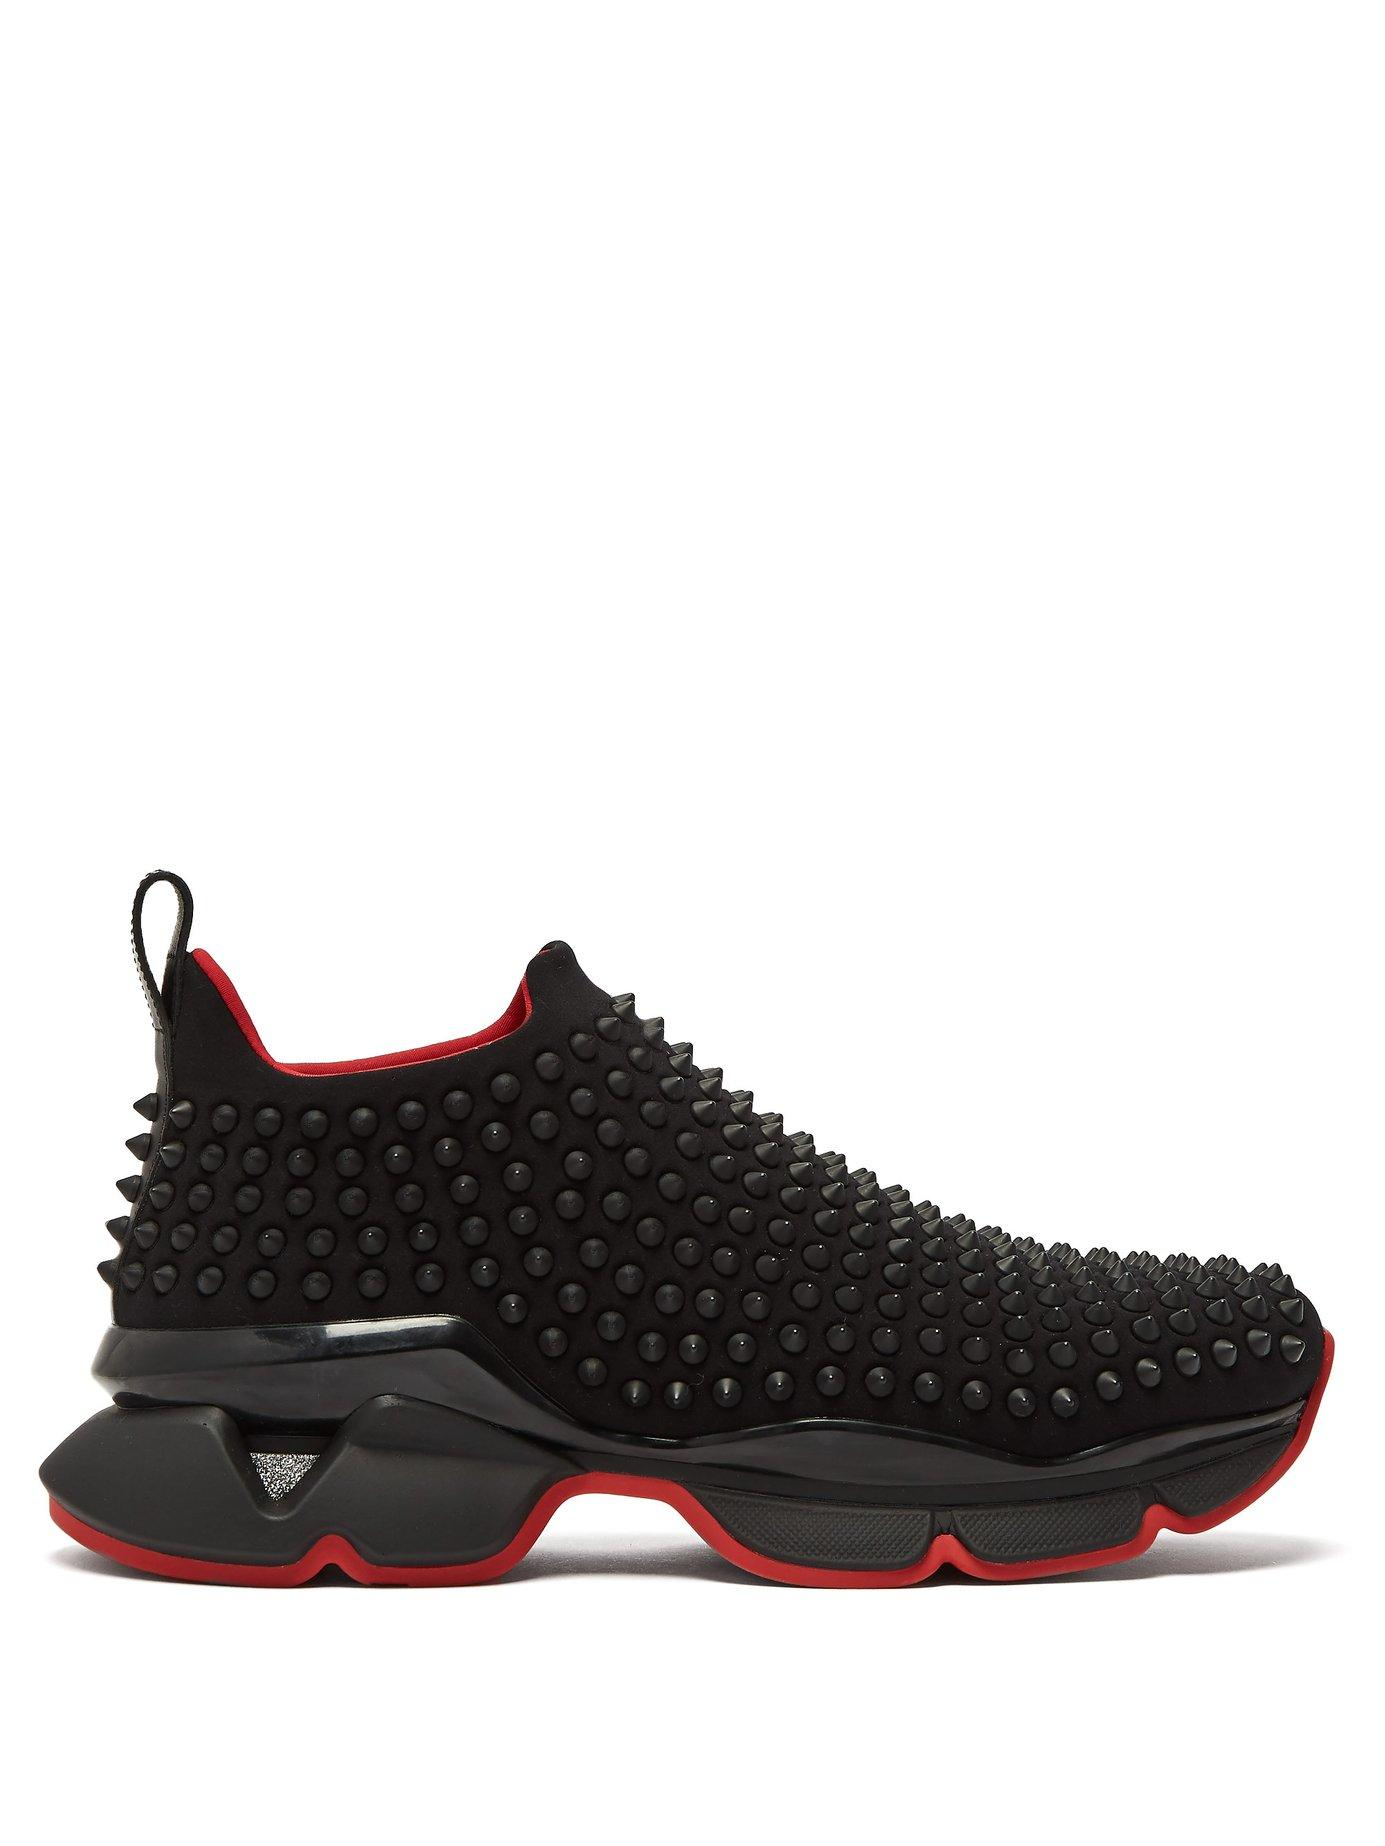 67c9c87a8840 Lyst - Christian Louboutin Spike Sock Studded Low Top Trainers in Black